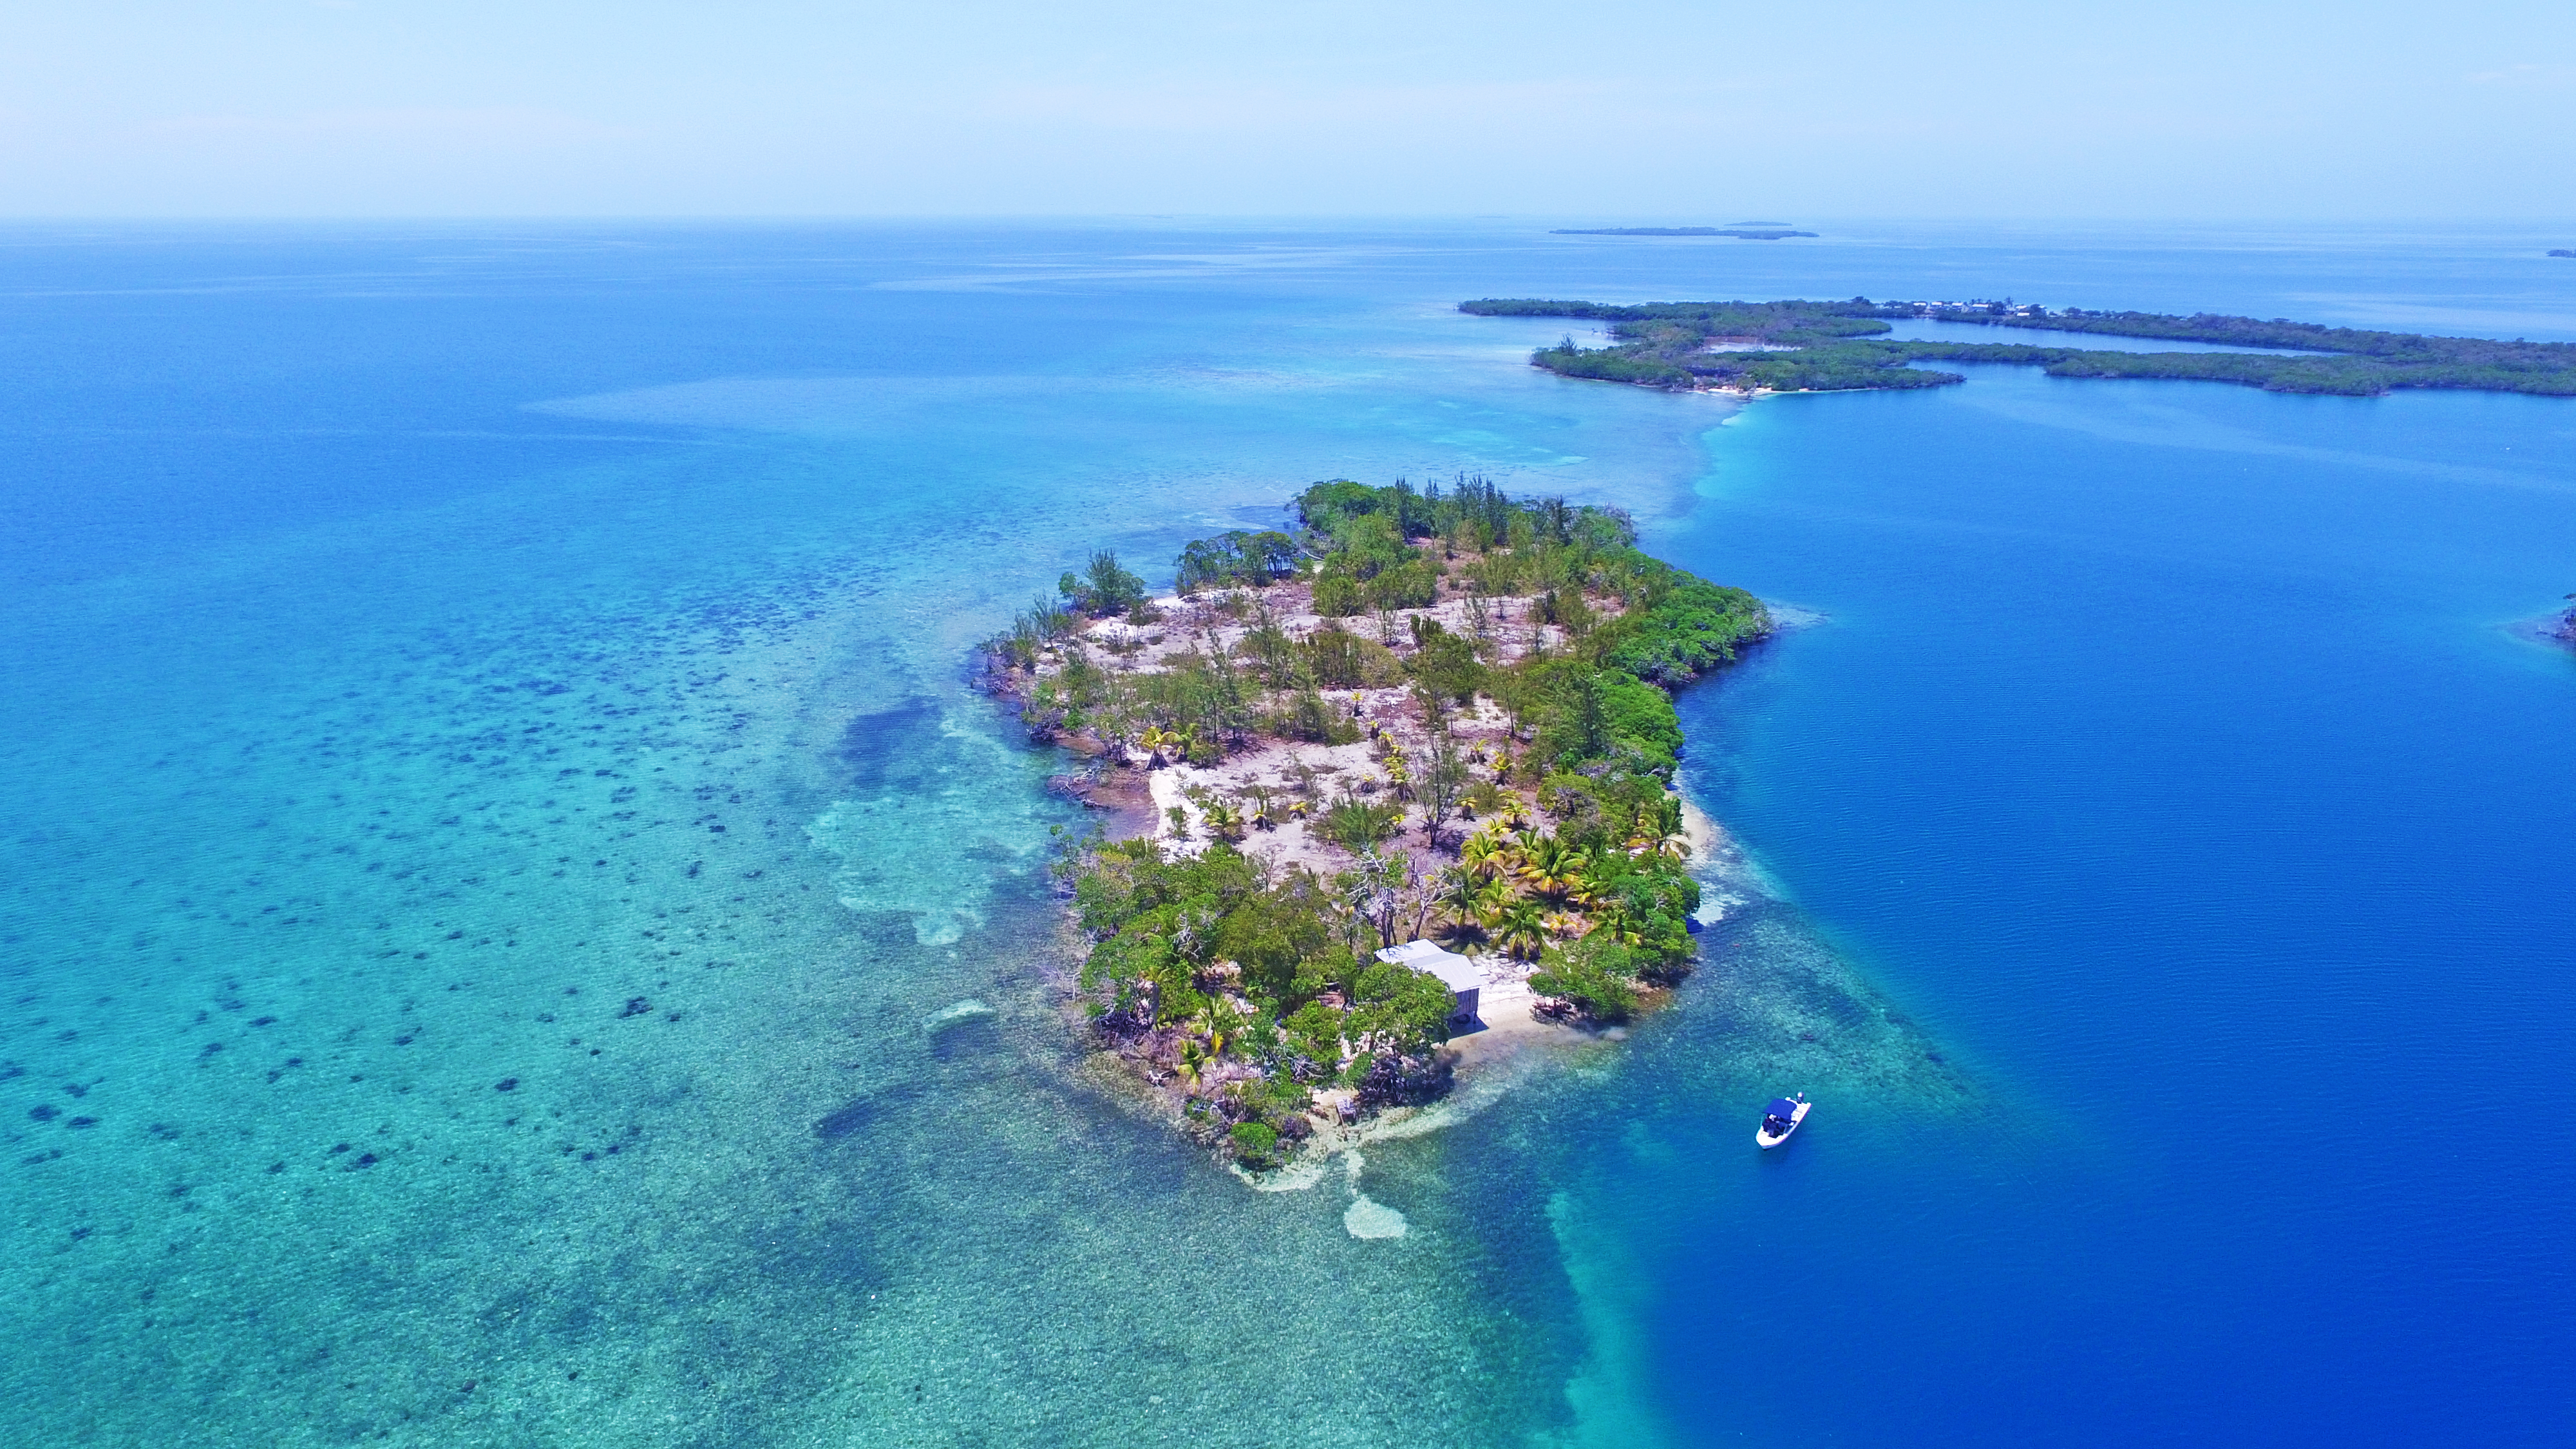 Sunset Caye - Belize, Central America - Private Islands for Sale